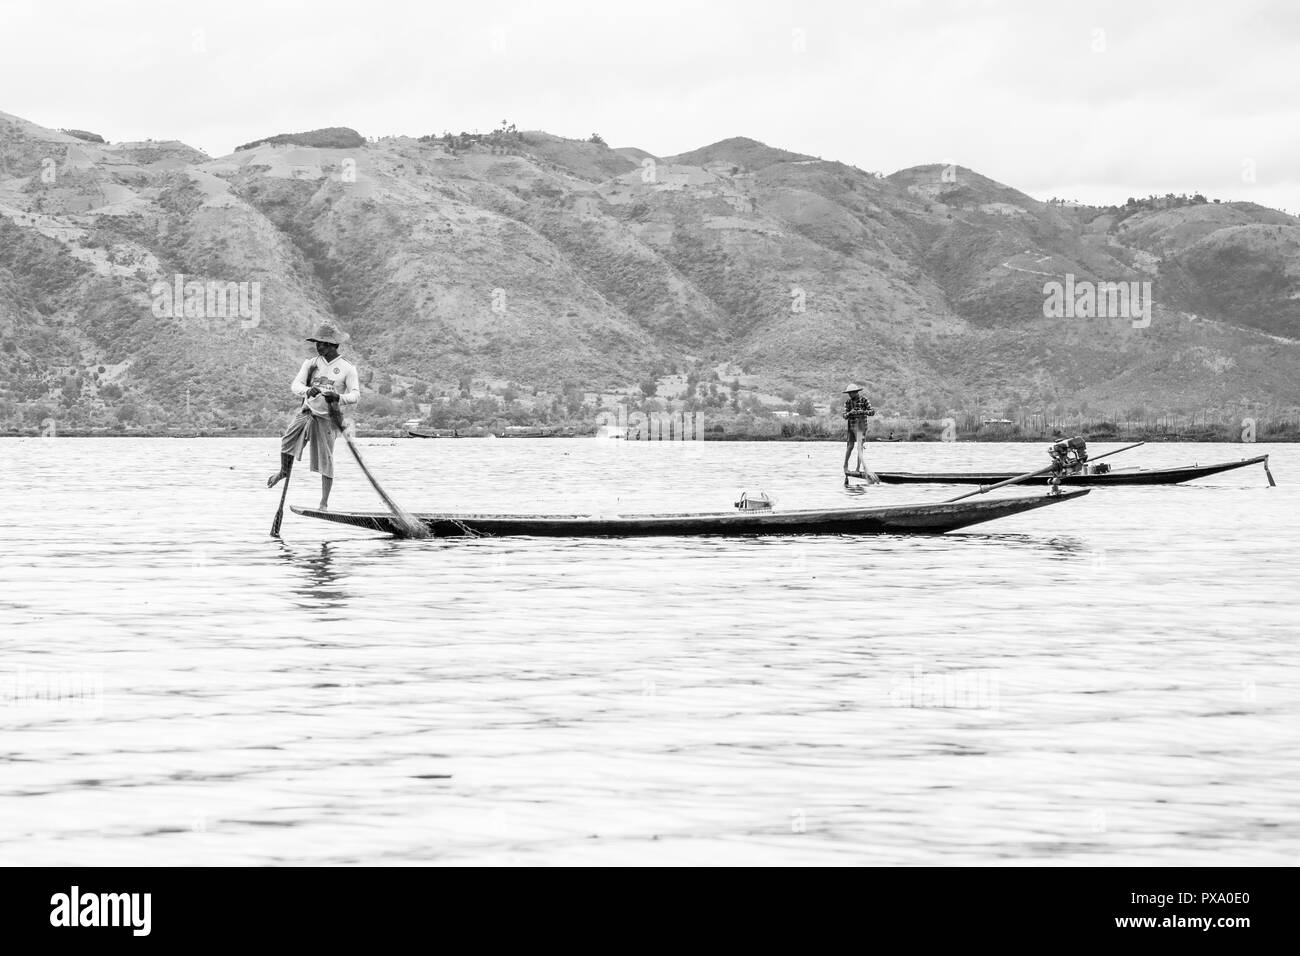 Travel: local young Burmese fisherman wearing Manchester United shirt, balancing and steering boat with his foot in Inle Lake, Burma, Myanmar, Asia - Stock Image